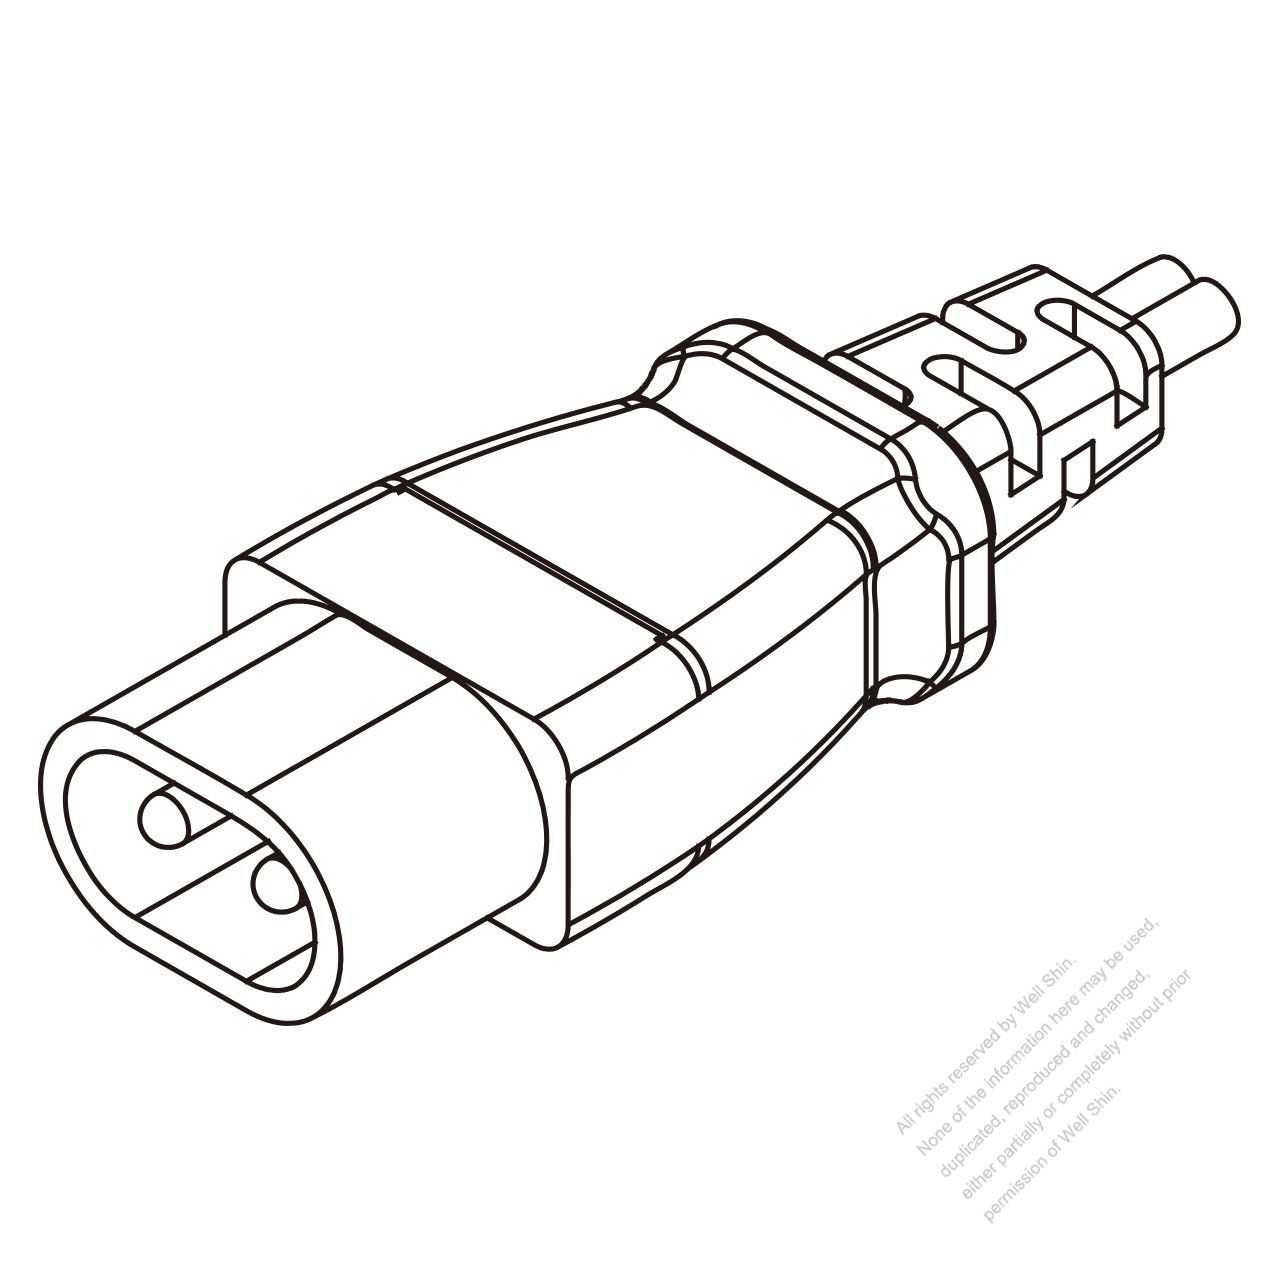 Japan Iec 320 C1 Plug Connectors 2 Pin 0 2a 125v